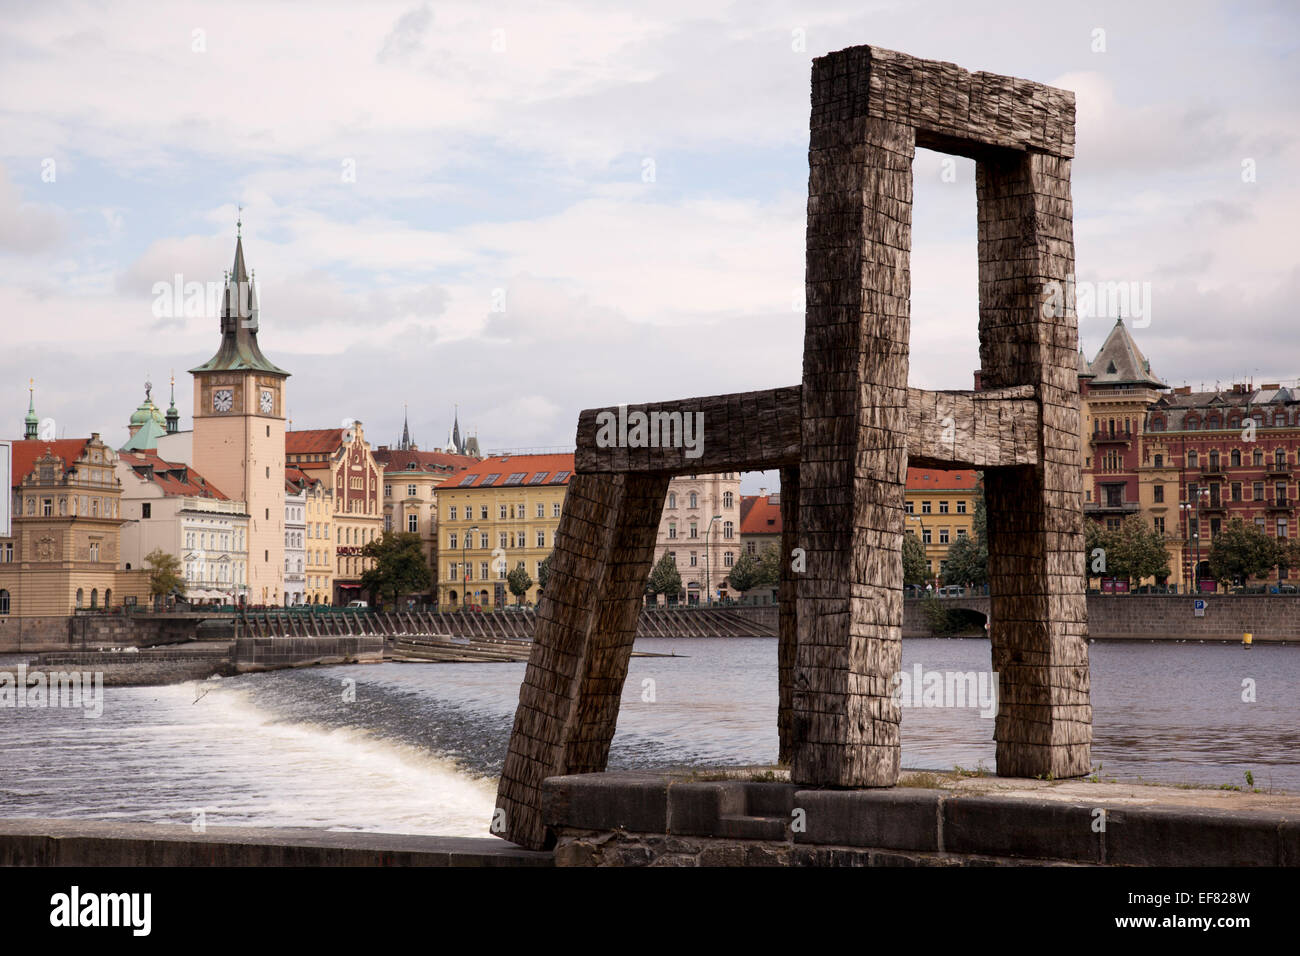 Large sculpture of a chair by Magdalena Jetelová a landmark visible from across the Vltava River, Prague - Stock Image